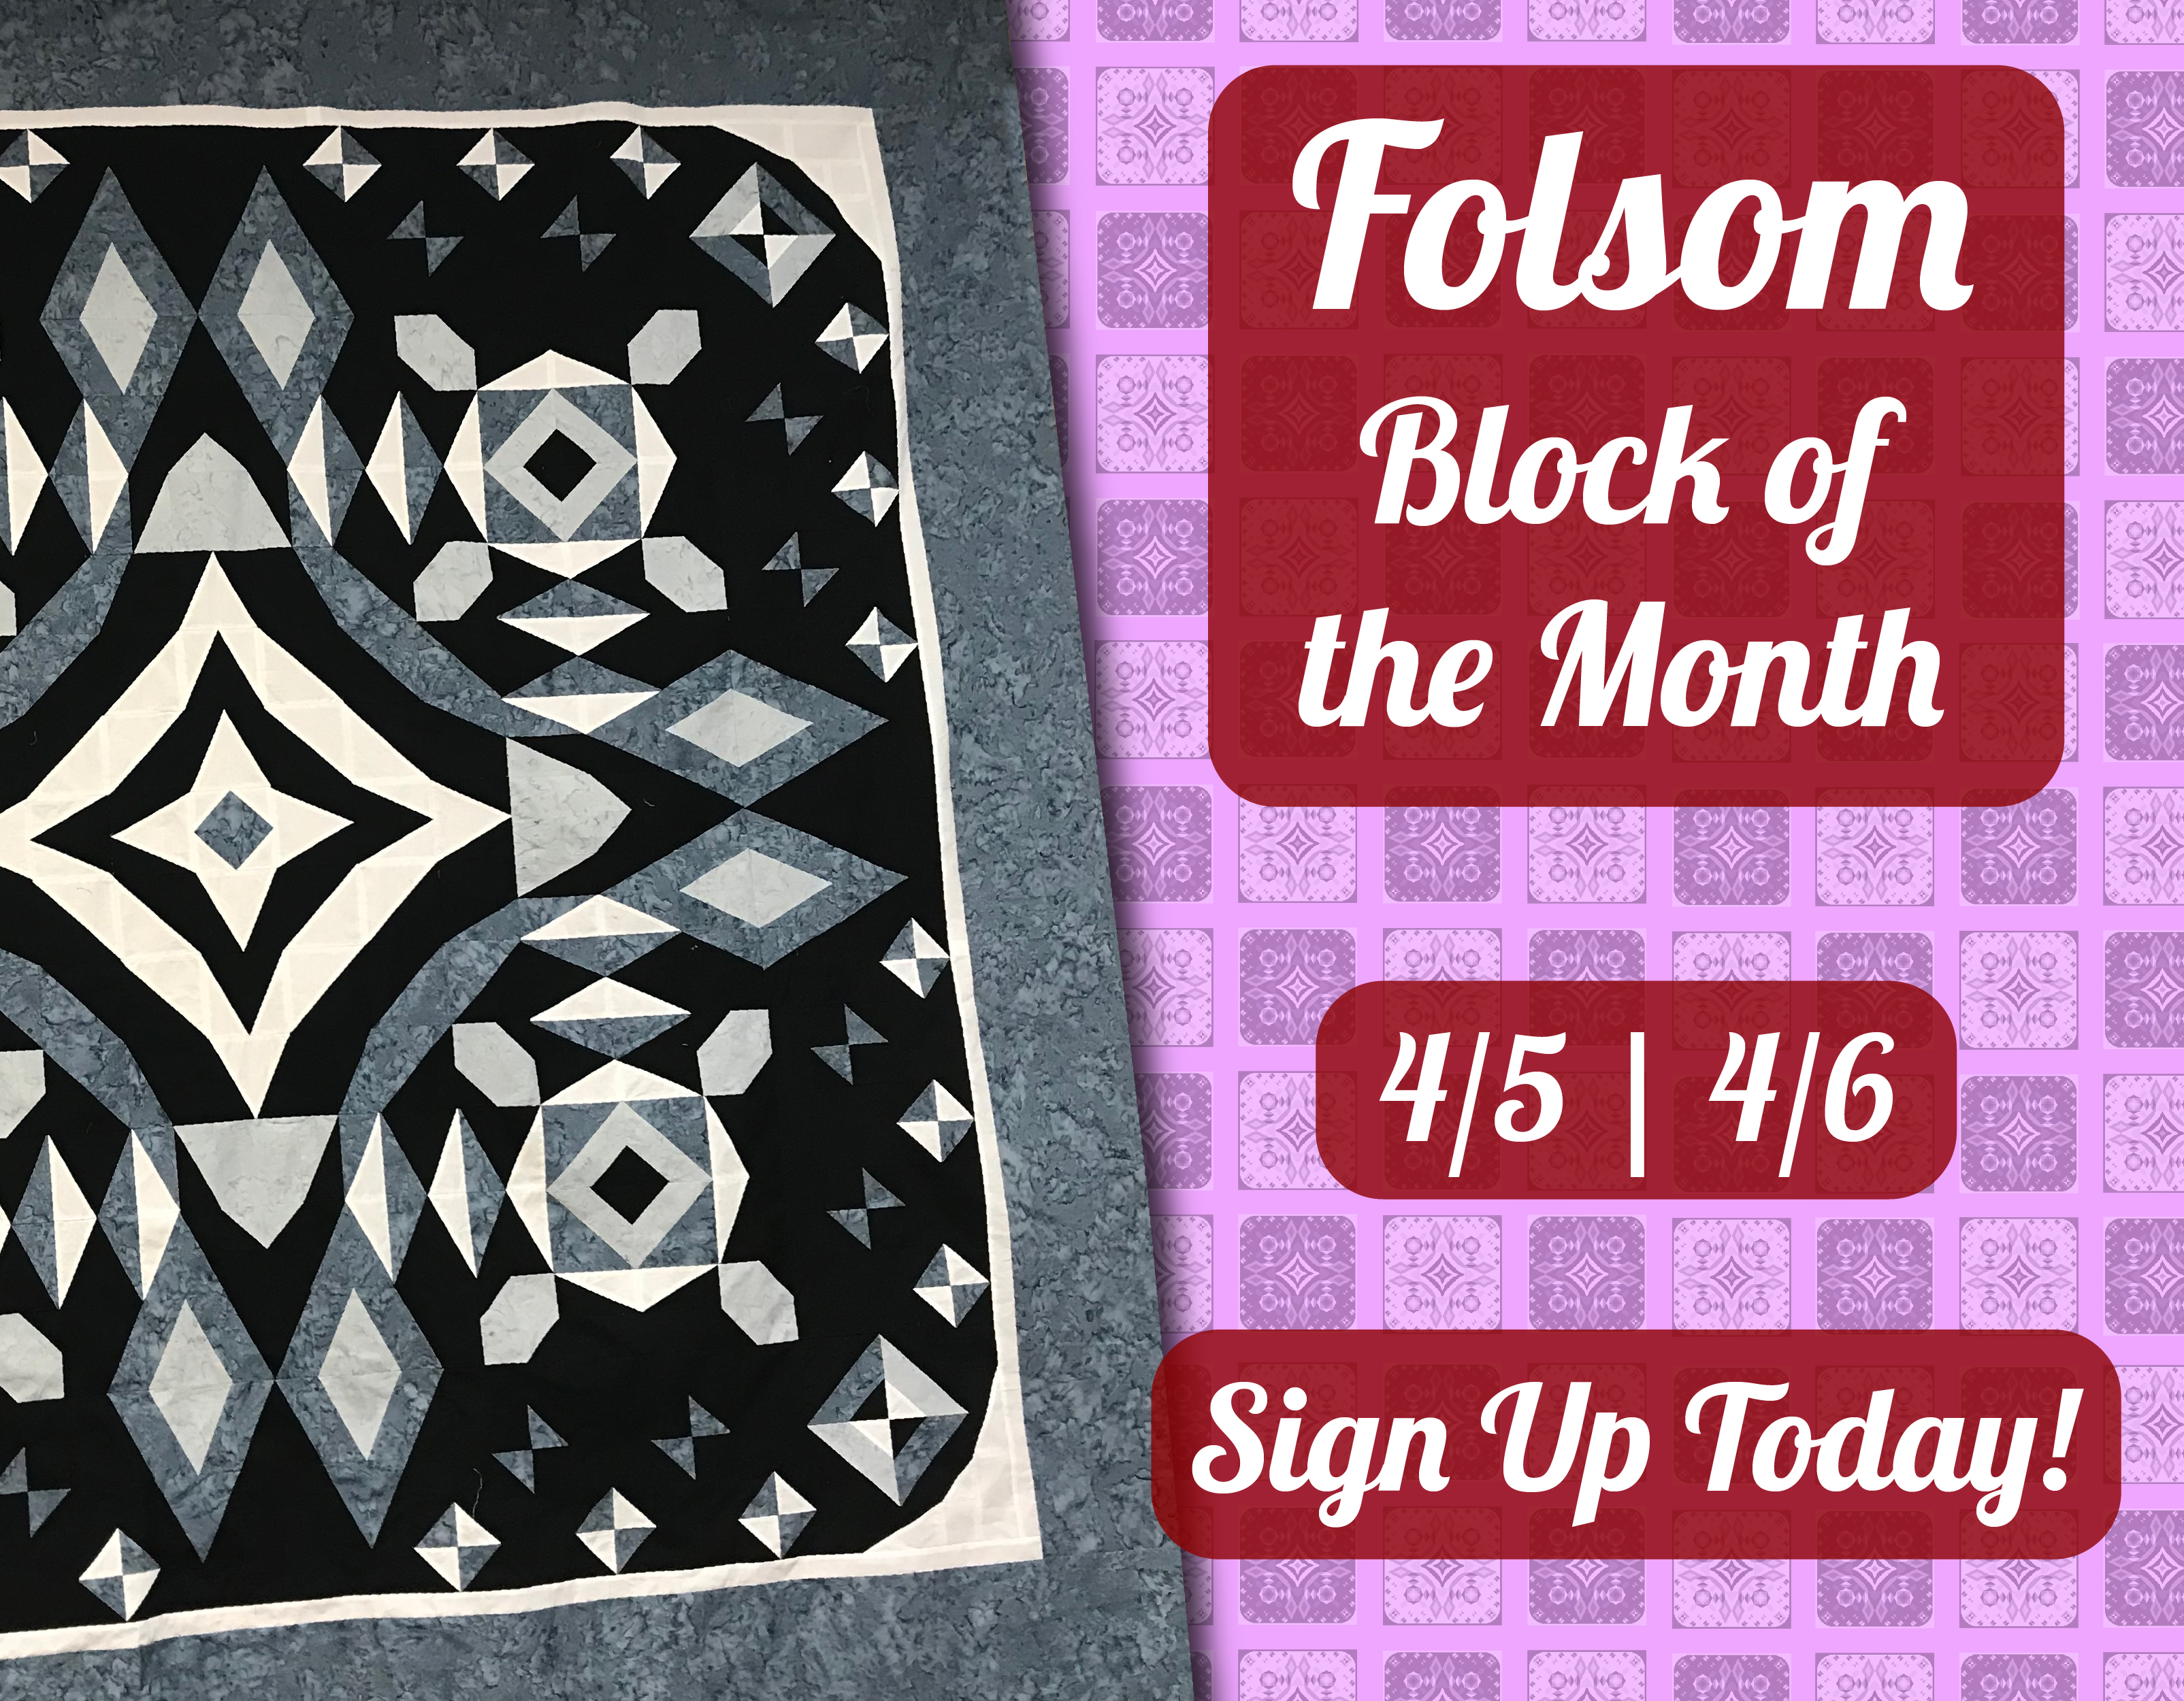 Folsom Block of the Month